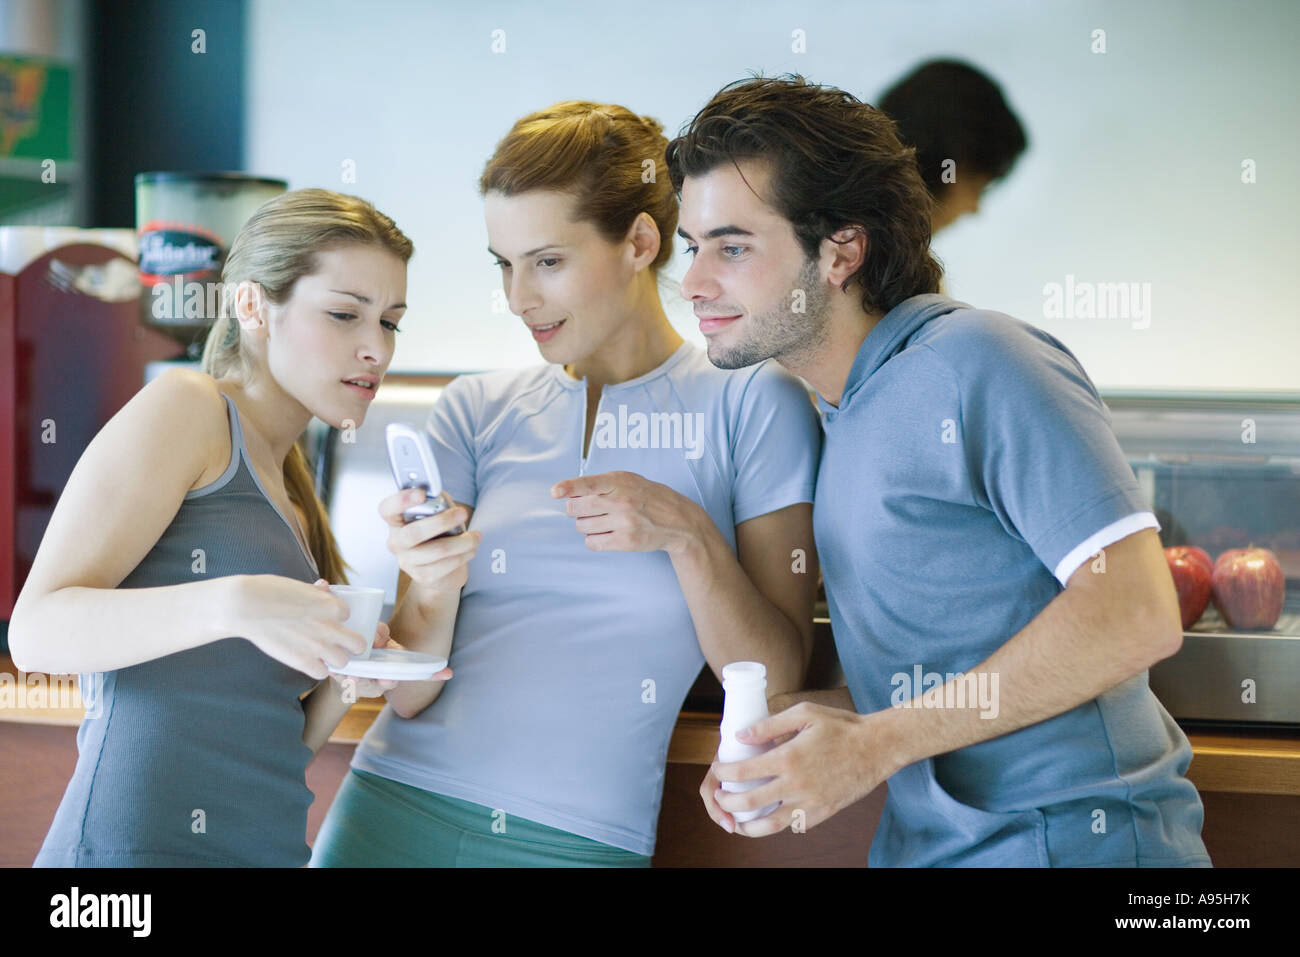 Young adults dressed in exercise clothes, standing by snack bar, looking at cell phone - Stock Image